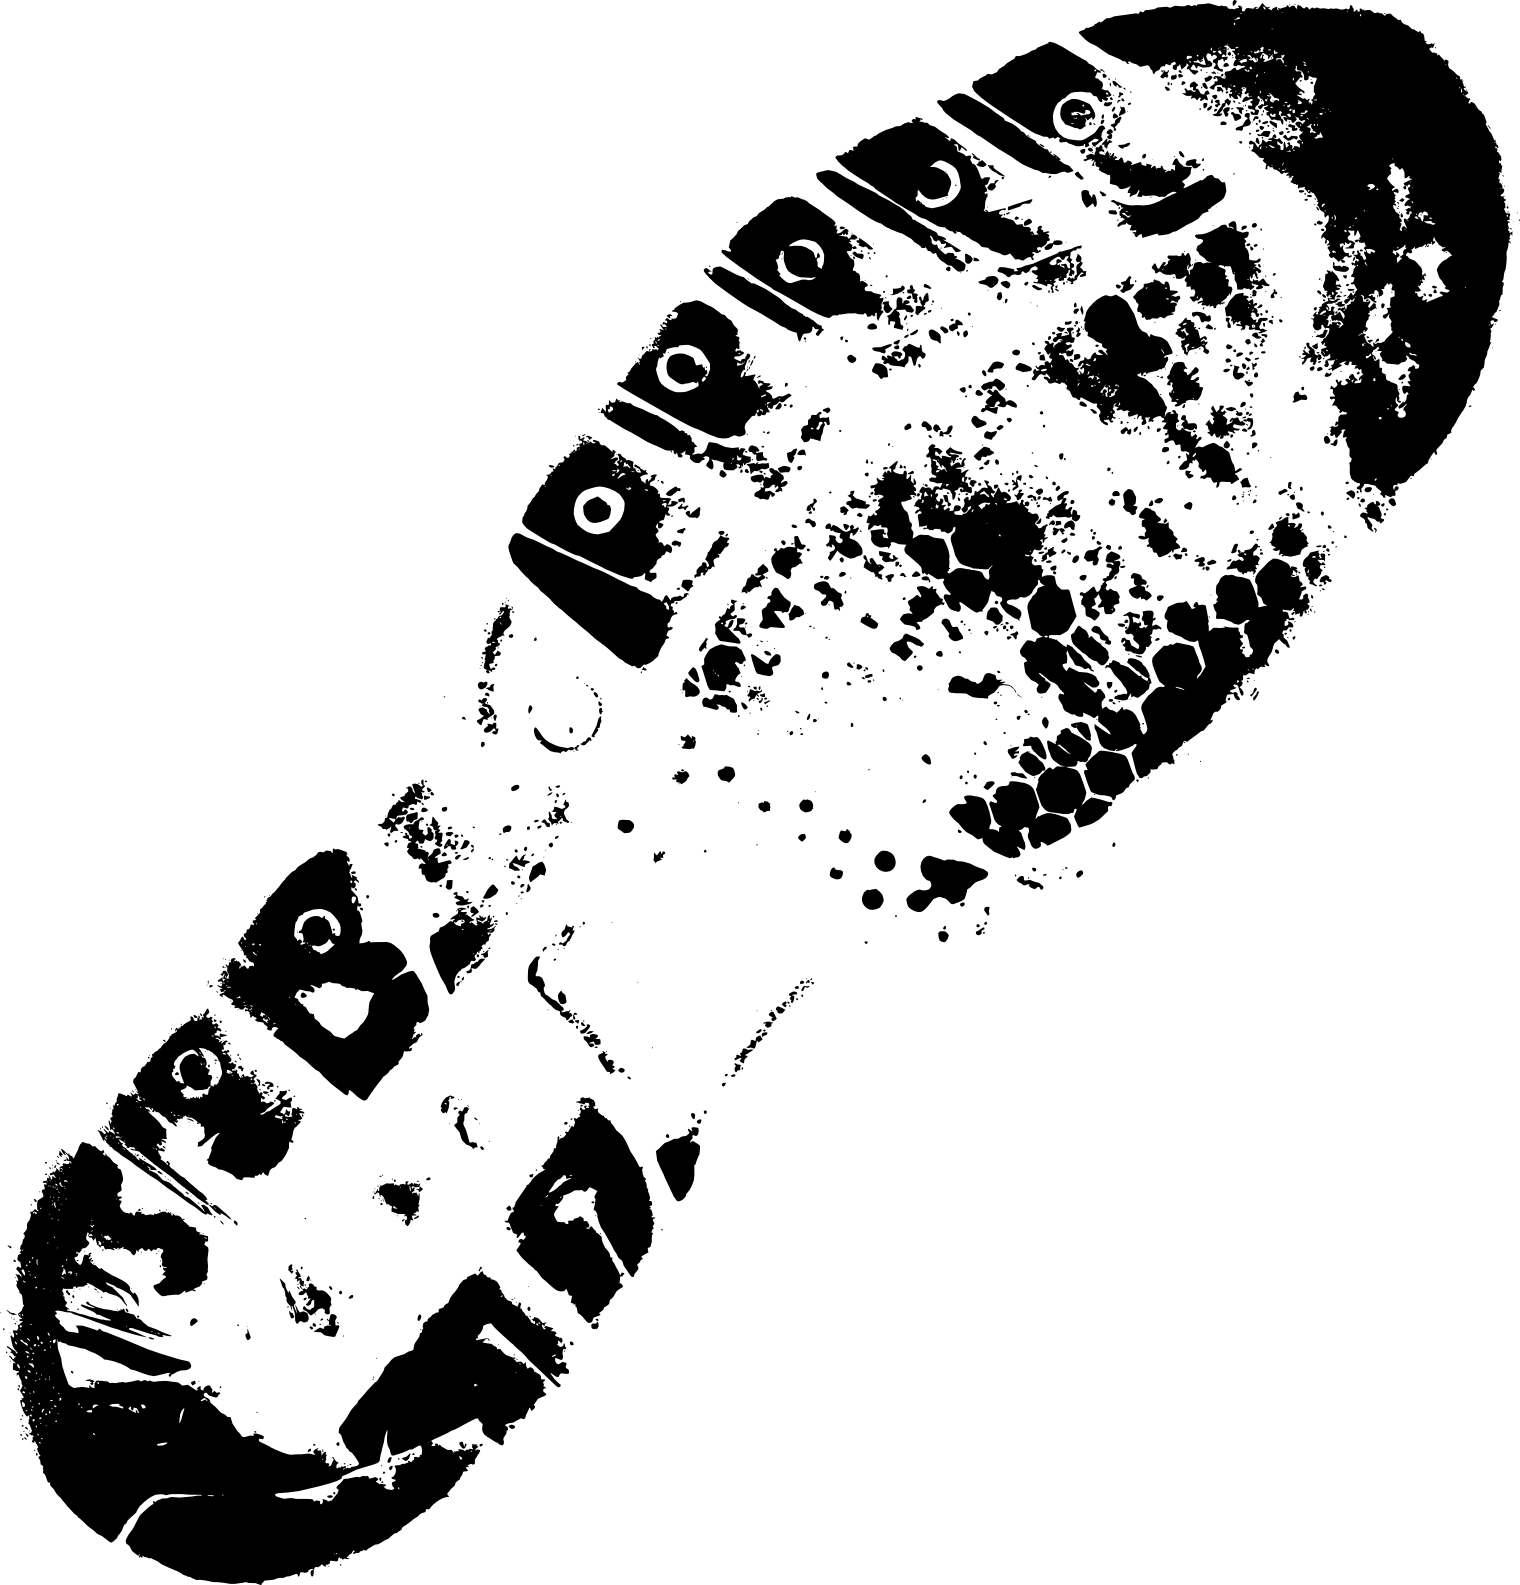 10 Shoe Footprints (PNG Transparent) | OnlyGFX.com